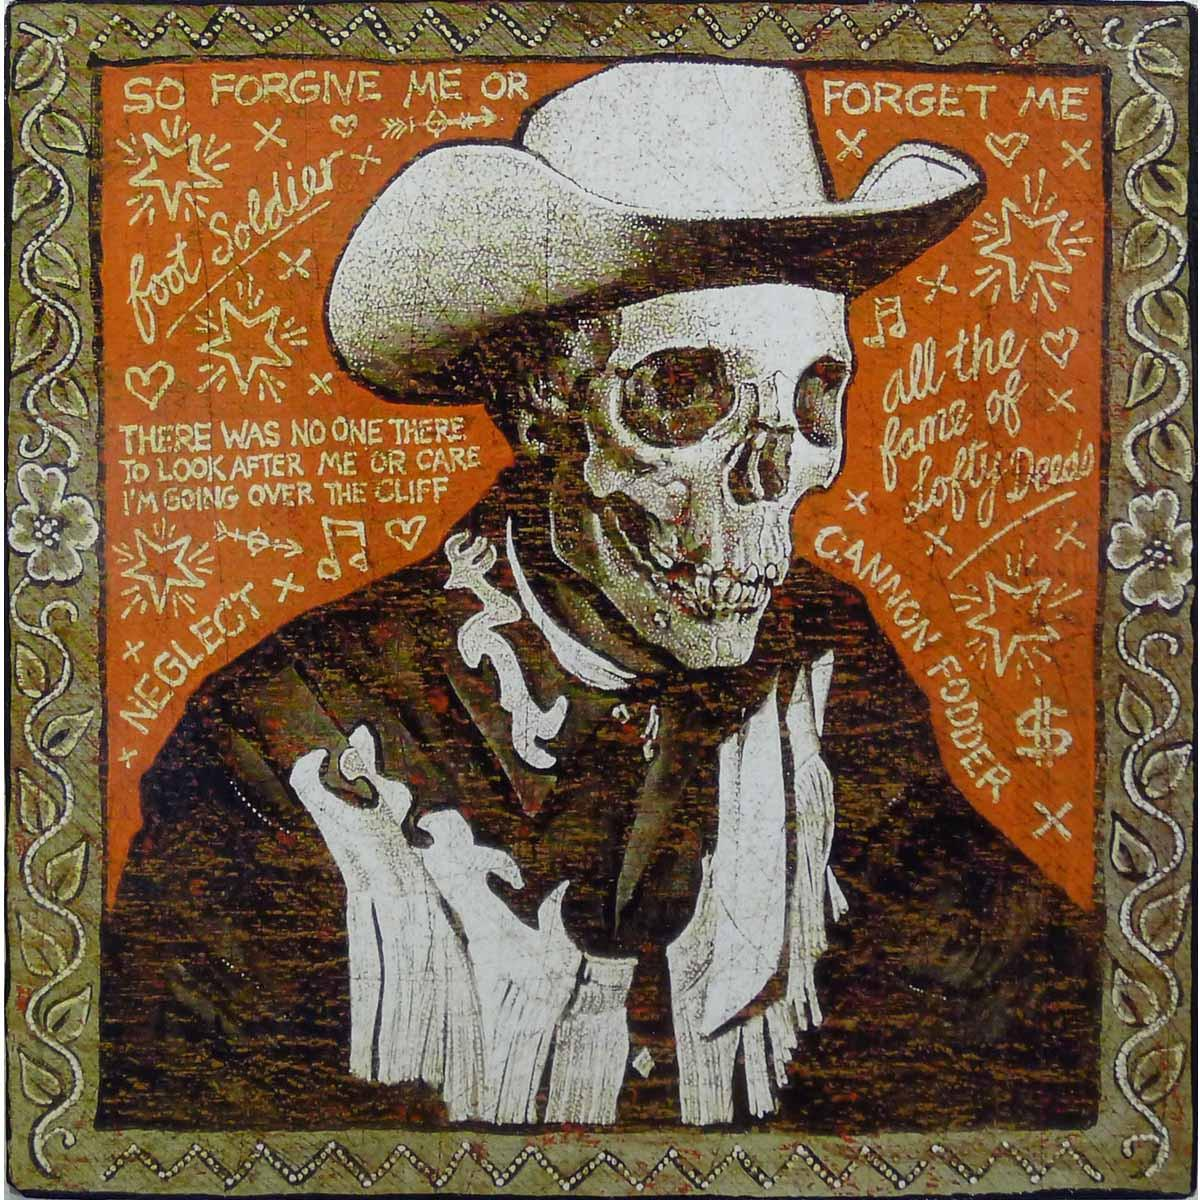 Over The Cliff - Jon Langford - Yard Dog Art